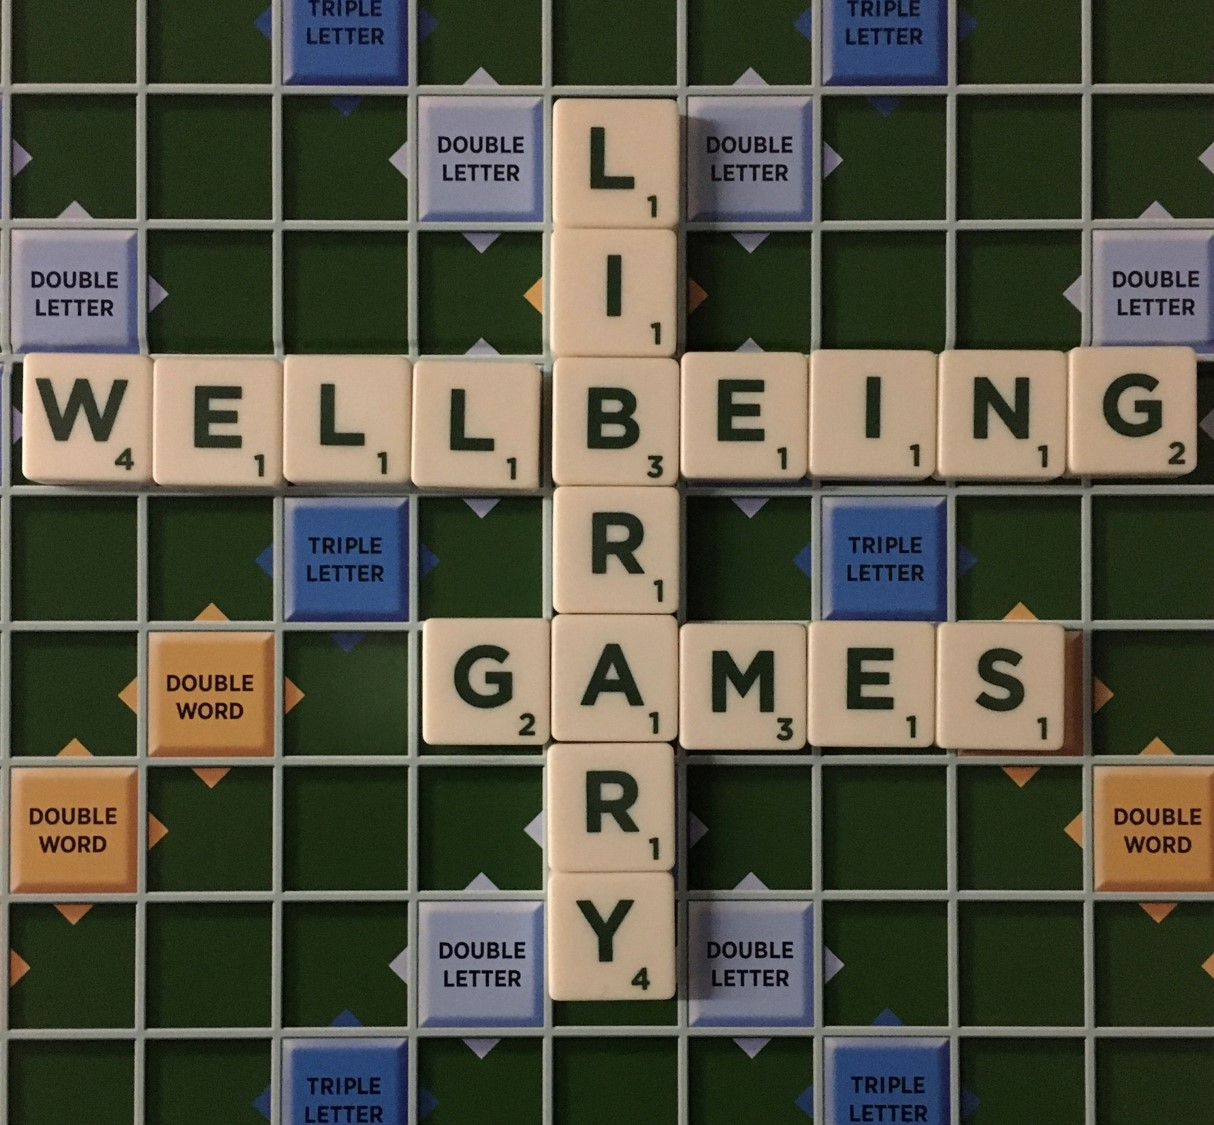 Scrabble letters spelling out Library Wellbeing Ga